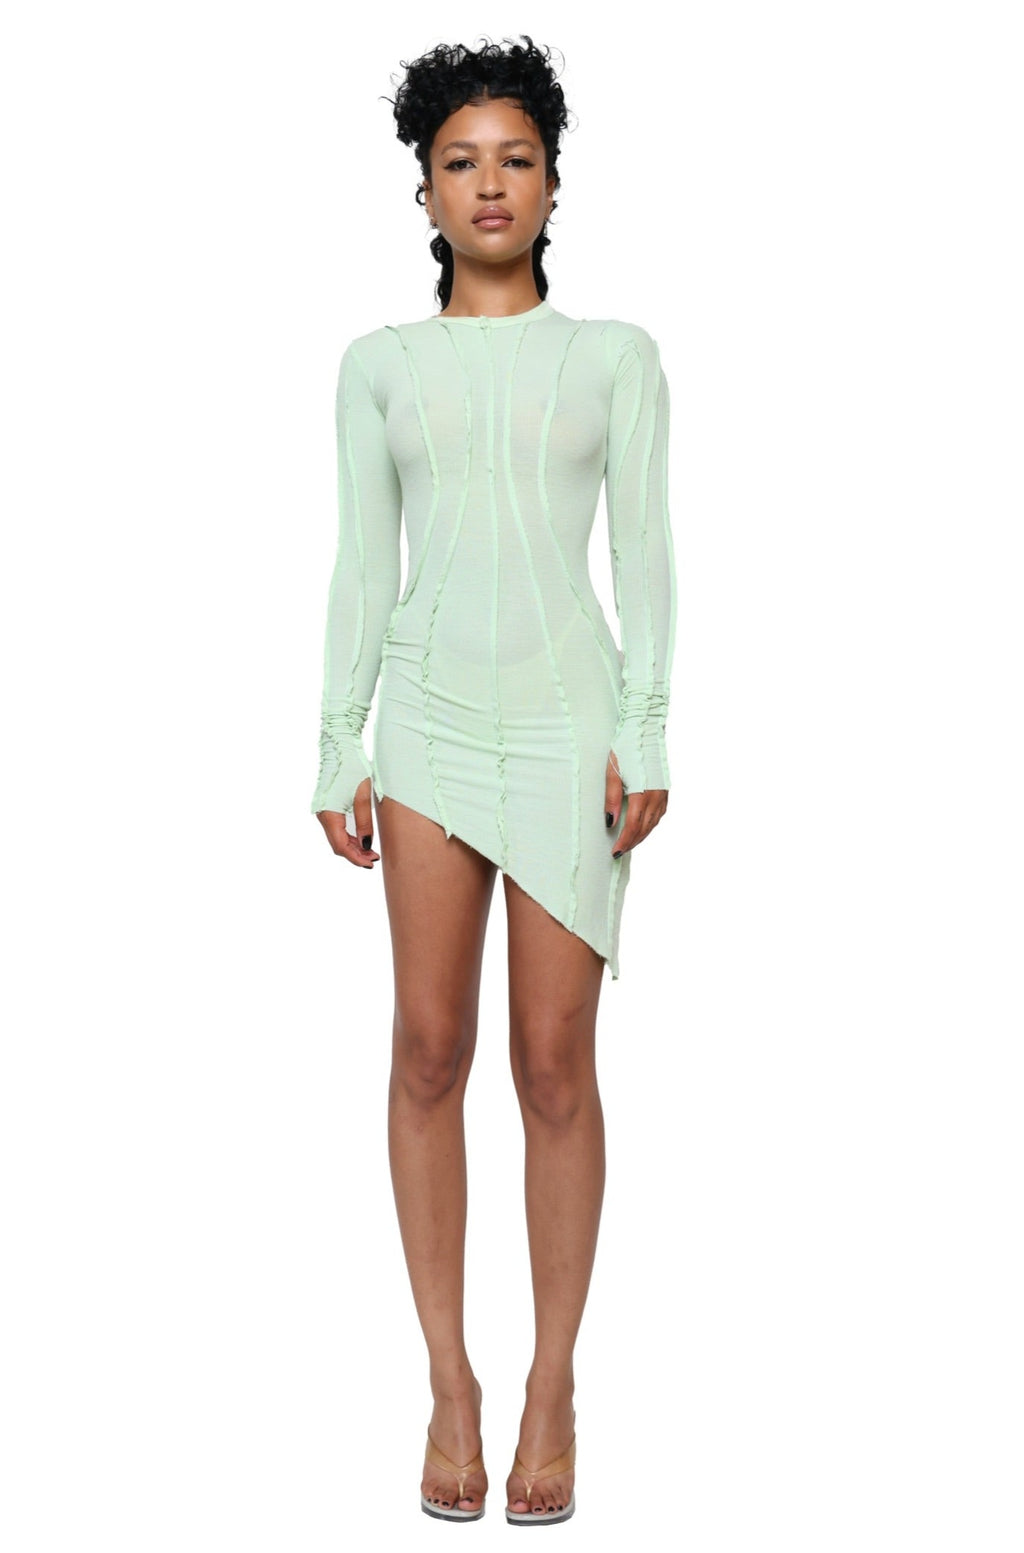 ASYMMETRIC LONG SLEEVE DRESS IN SEAFOAM